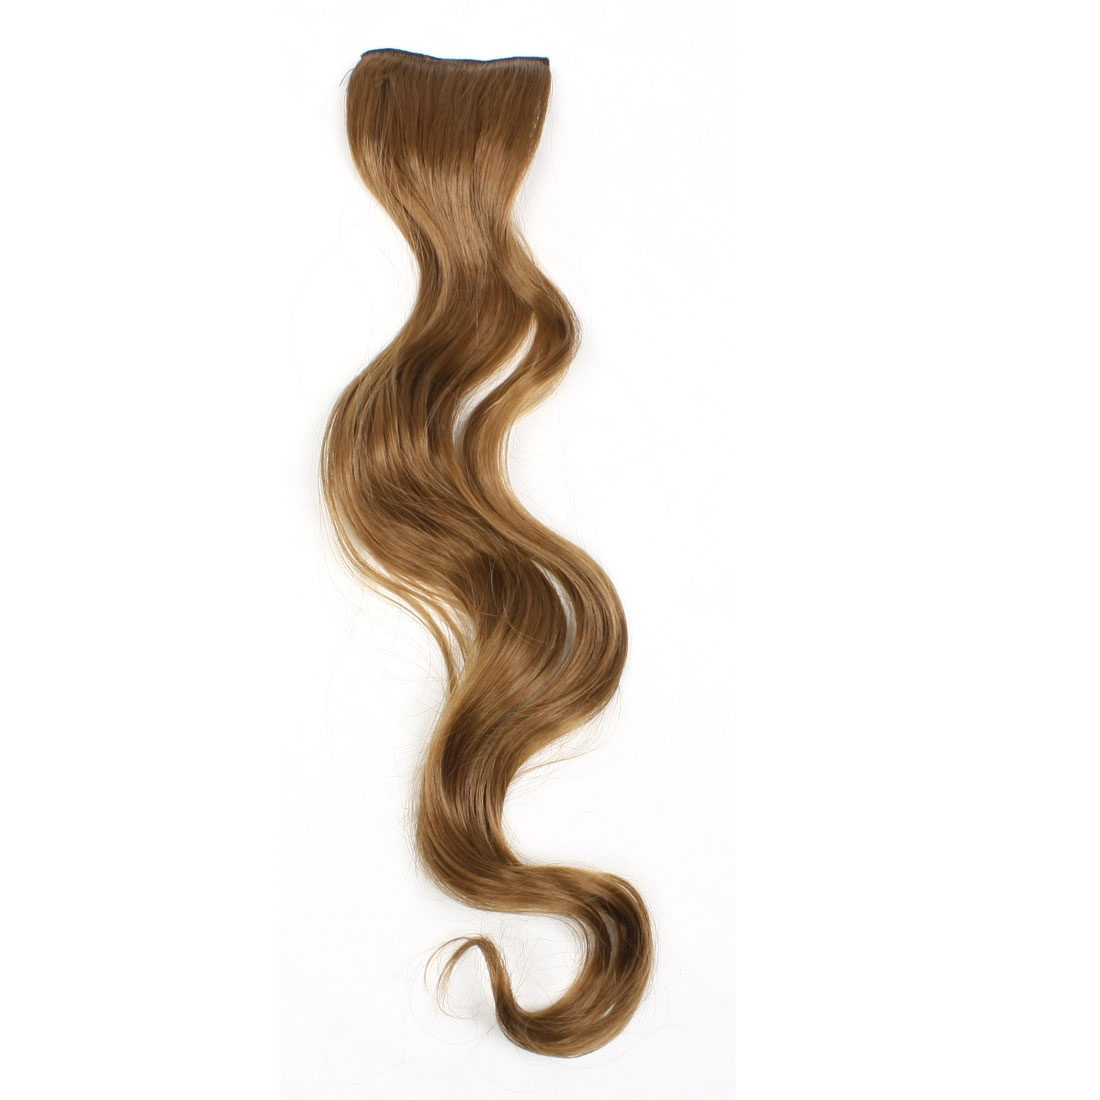 "Women Brown Long Curl Wave Ponytail Hairpiece 22"" 2 Pieces"